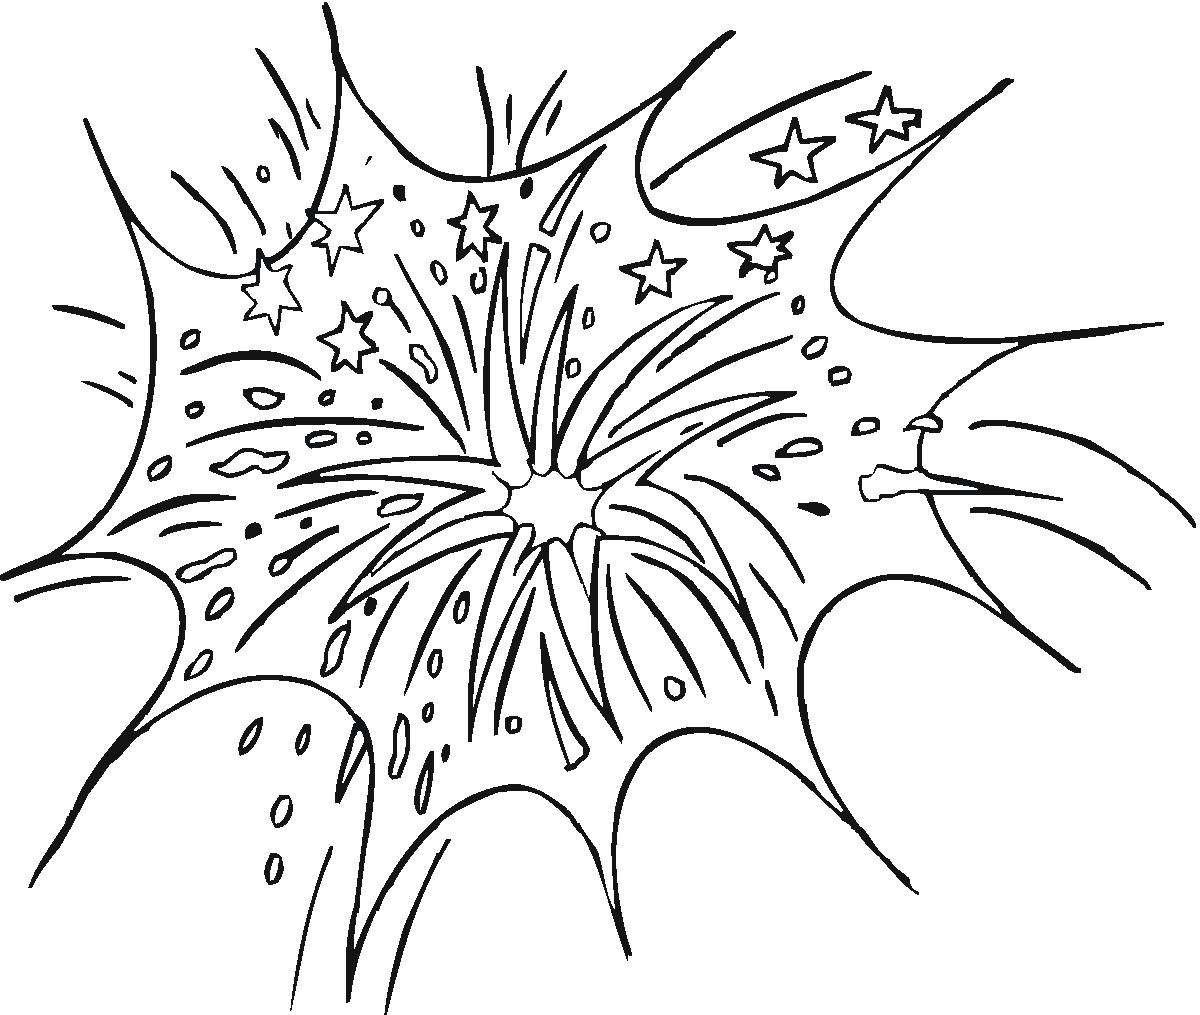 Ordinaire Fireworks Coloring Pages Free Printable